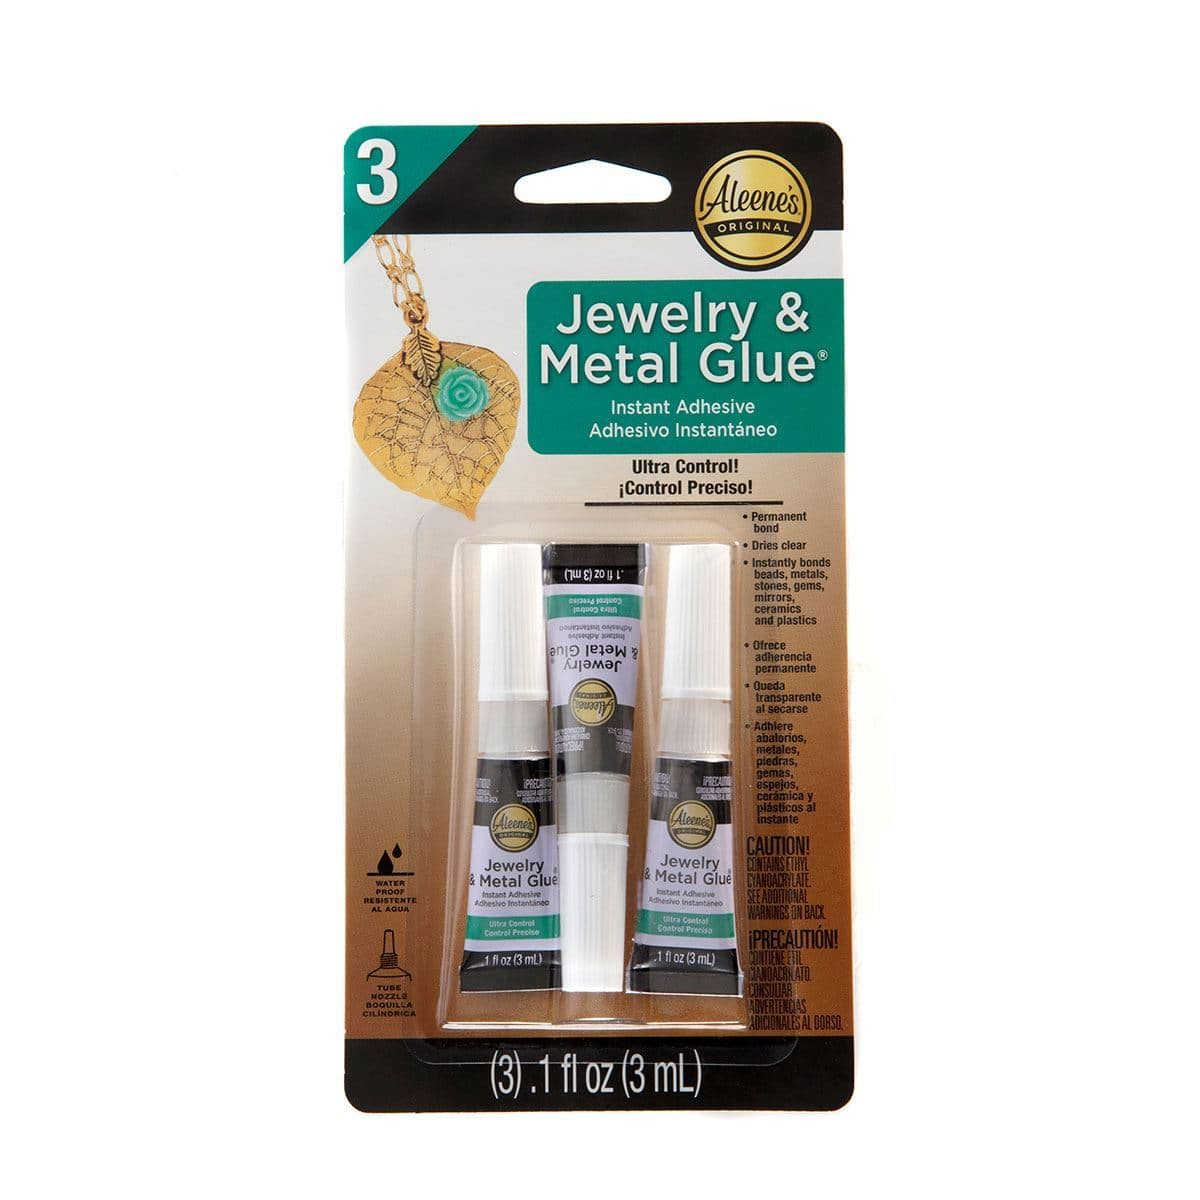 Aleene's Jewelry & Metal Glue